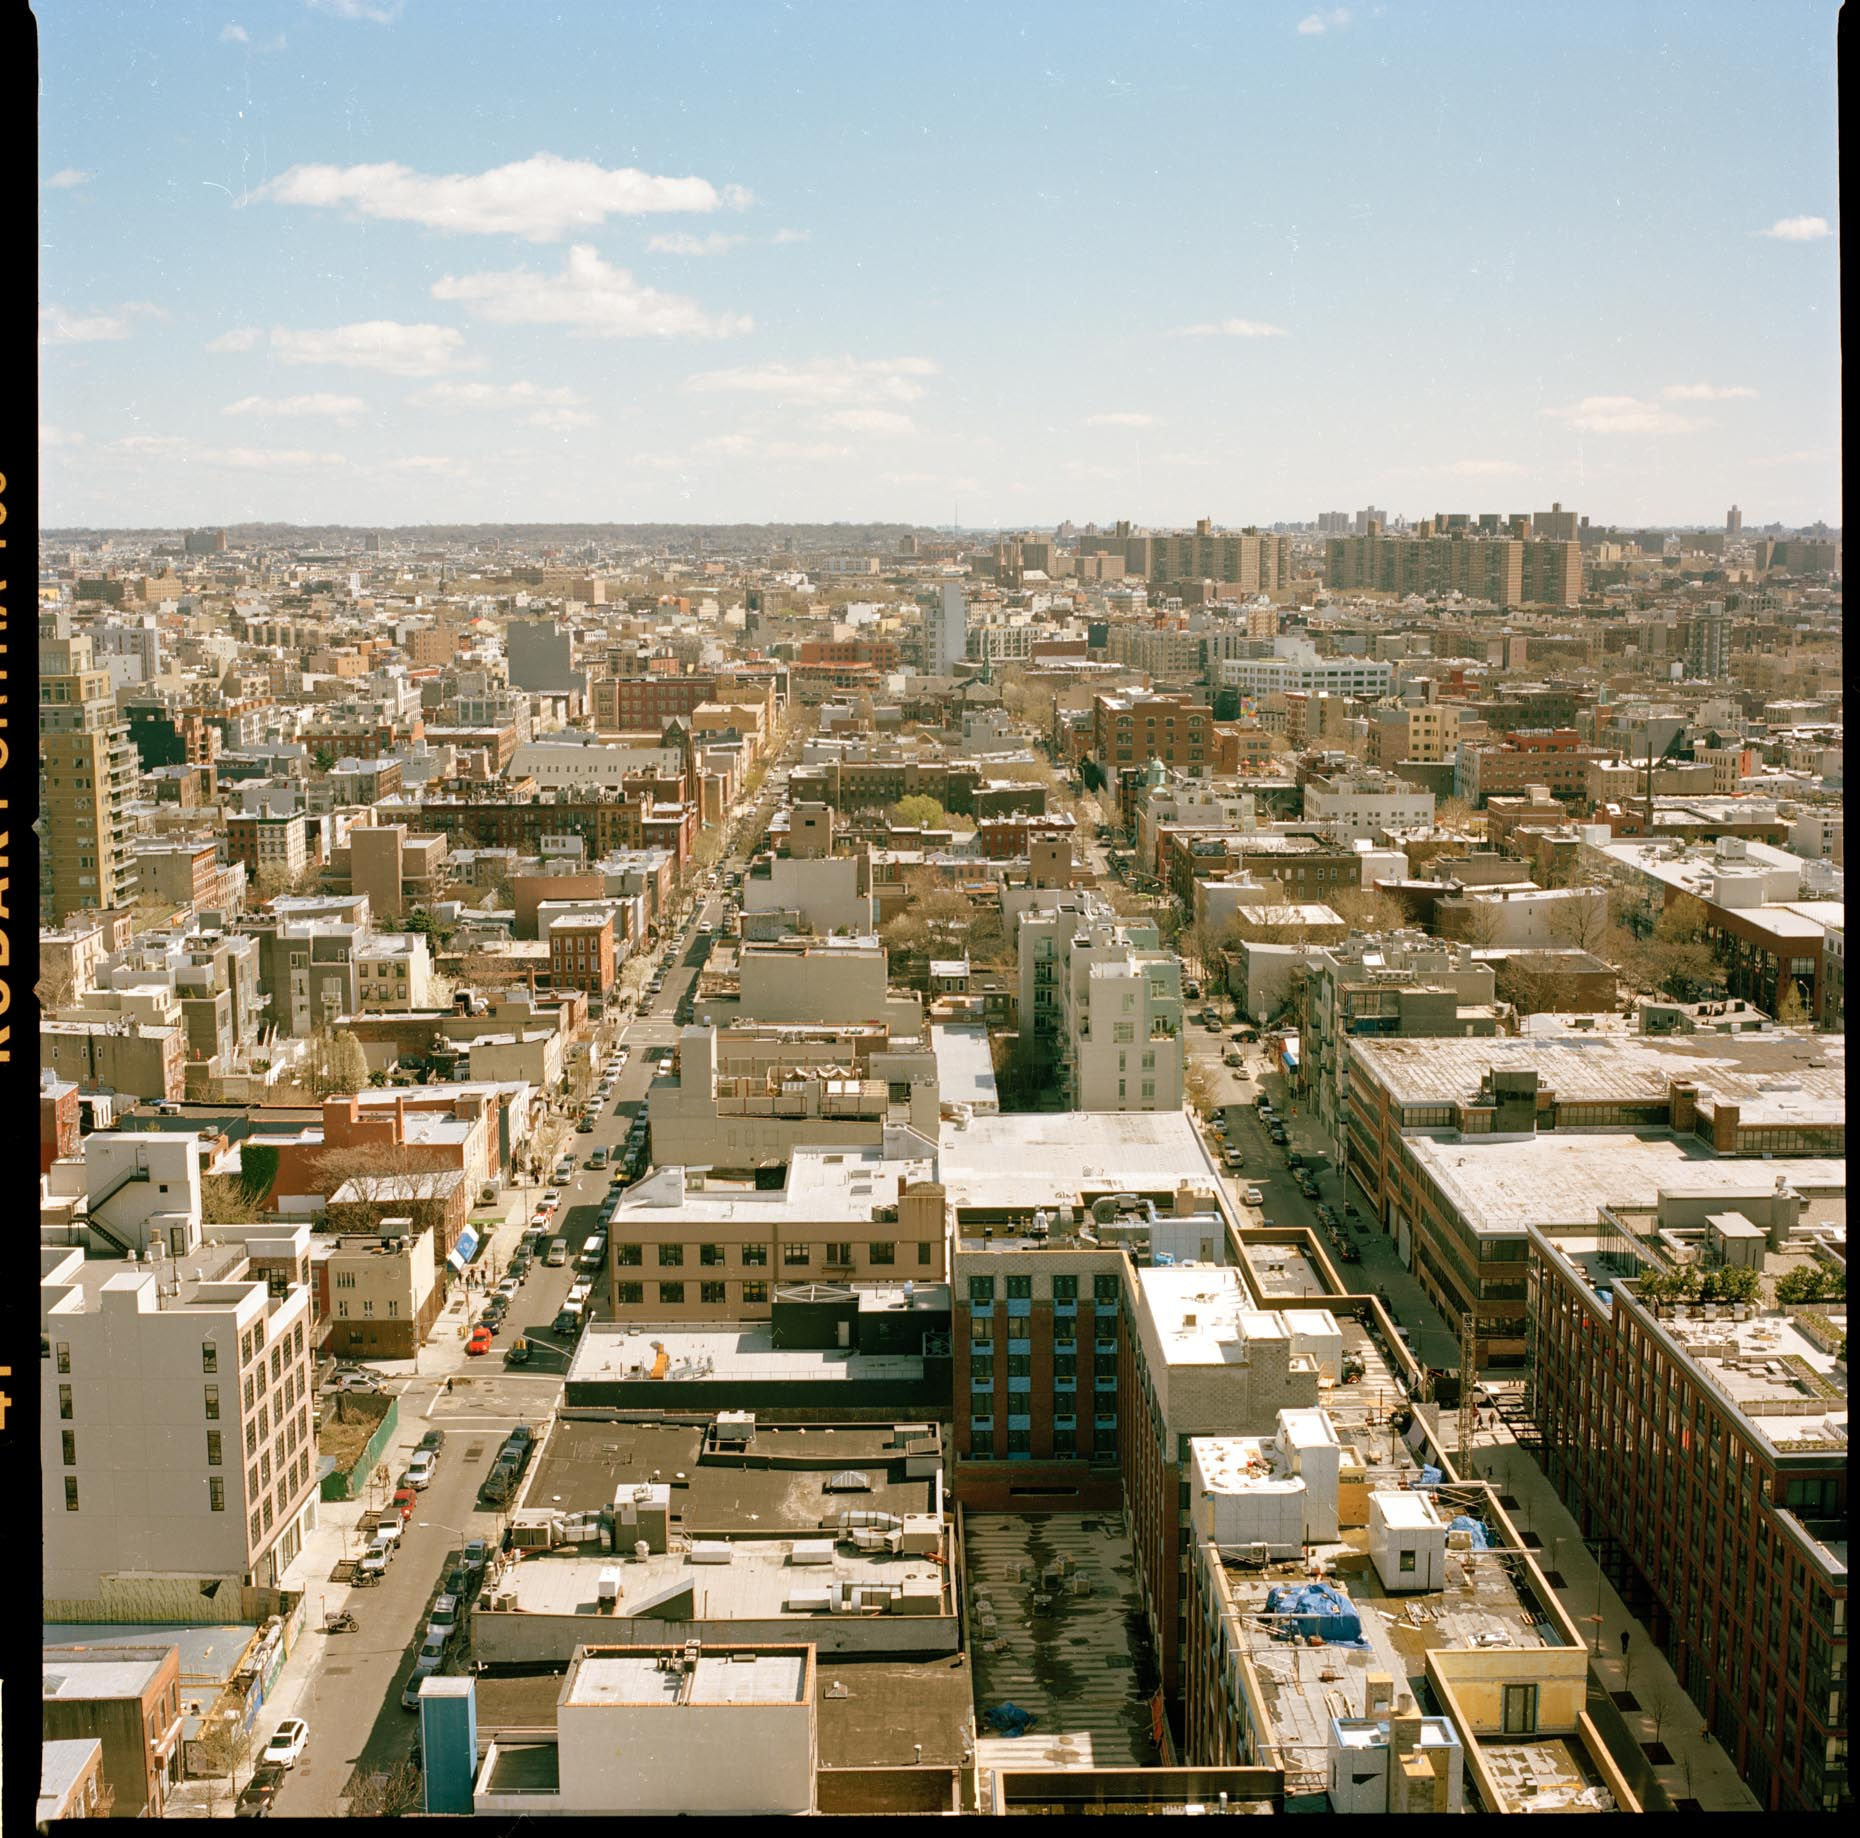 A birds eye view of Brooklyn, New York